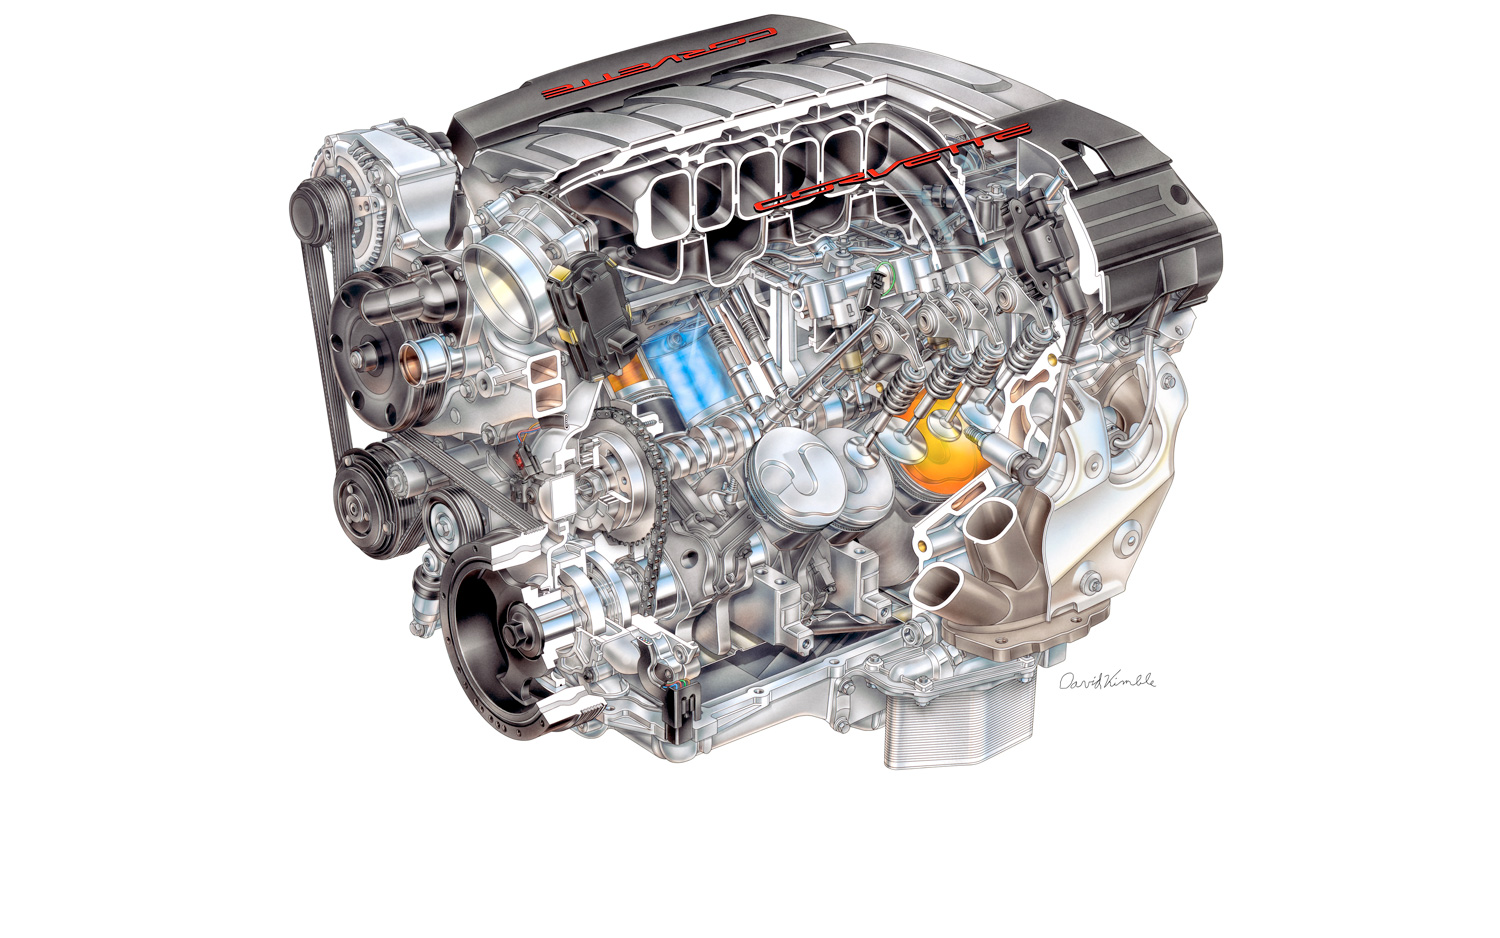 Next-Gen LT1 6.2-Liter V-8 for 2014 Corvette Revealed with 450 HP, New Tech